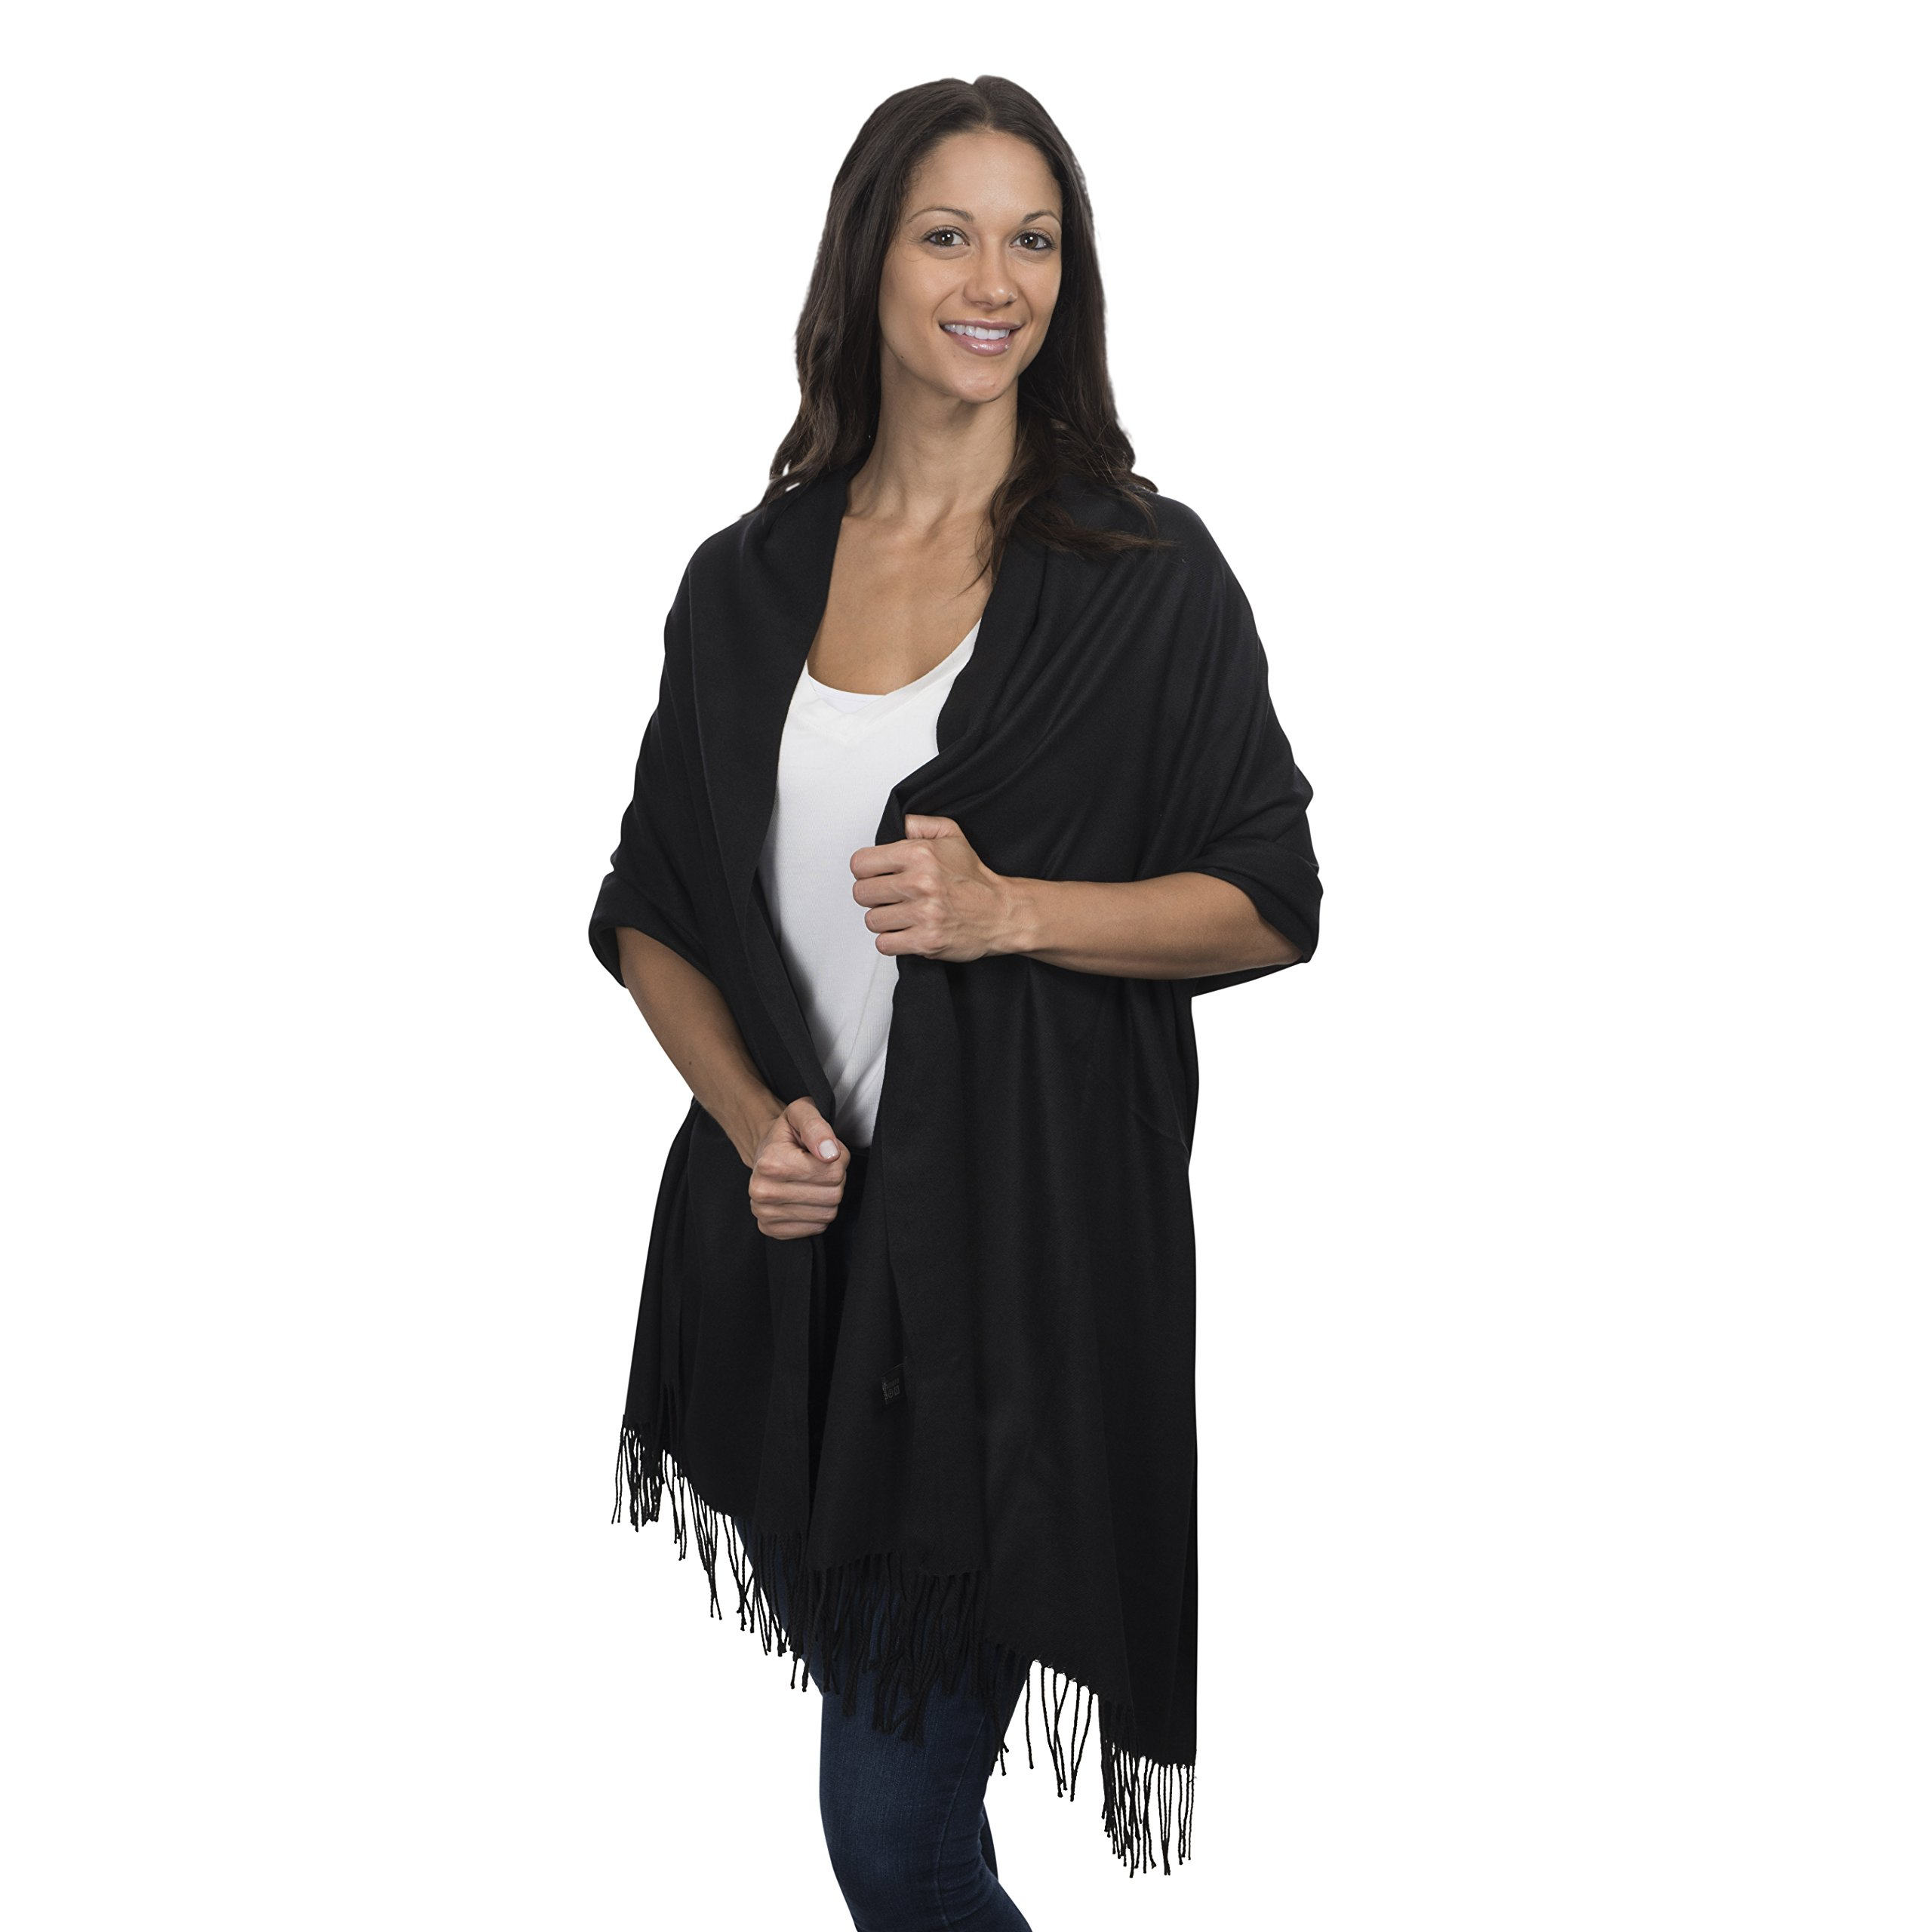 Cashmere & Class Large Soft Cashmere Scarf Wrap - Womens Winter Shawl + Gift Box (Black)